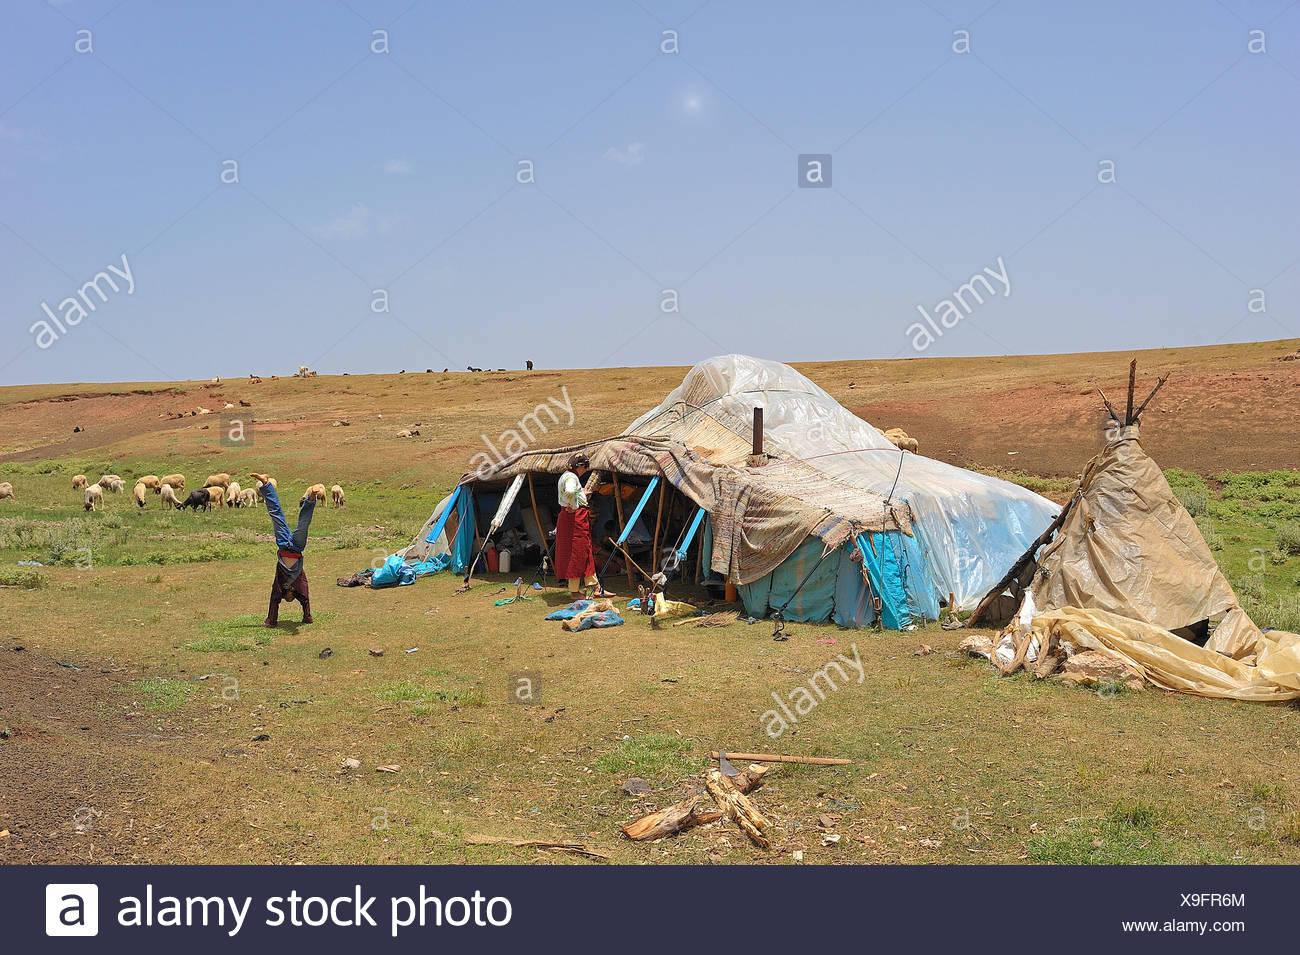 Nomad's tent covered with plastic sheeting against the rain, nomad boy doing a handstand, Middle Atlas, Morocco, Africa - Stock Image